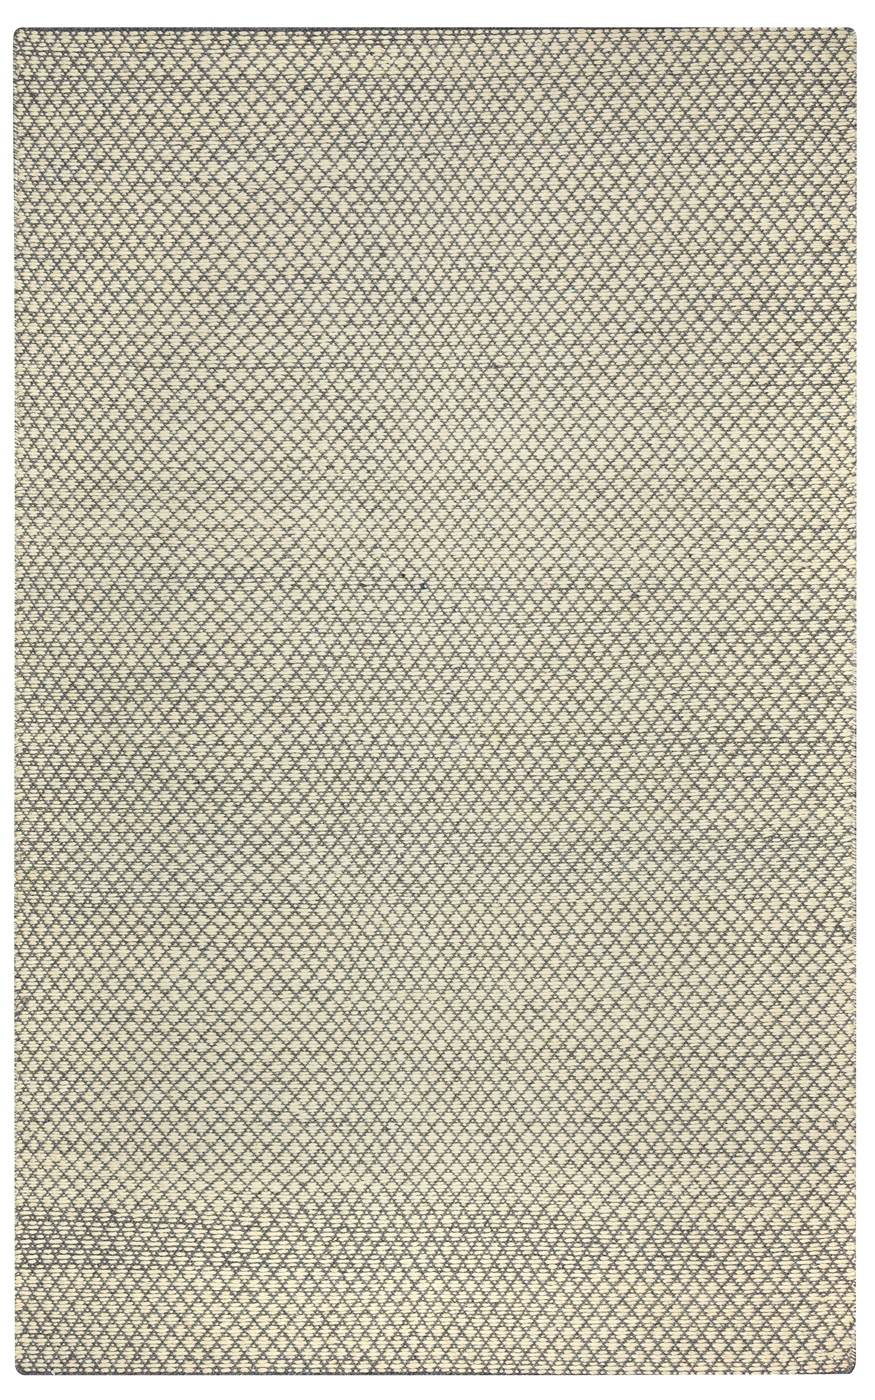 Twist Textured Woven Pattern Wool Area Rug In Tan Amp Gray